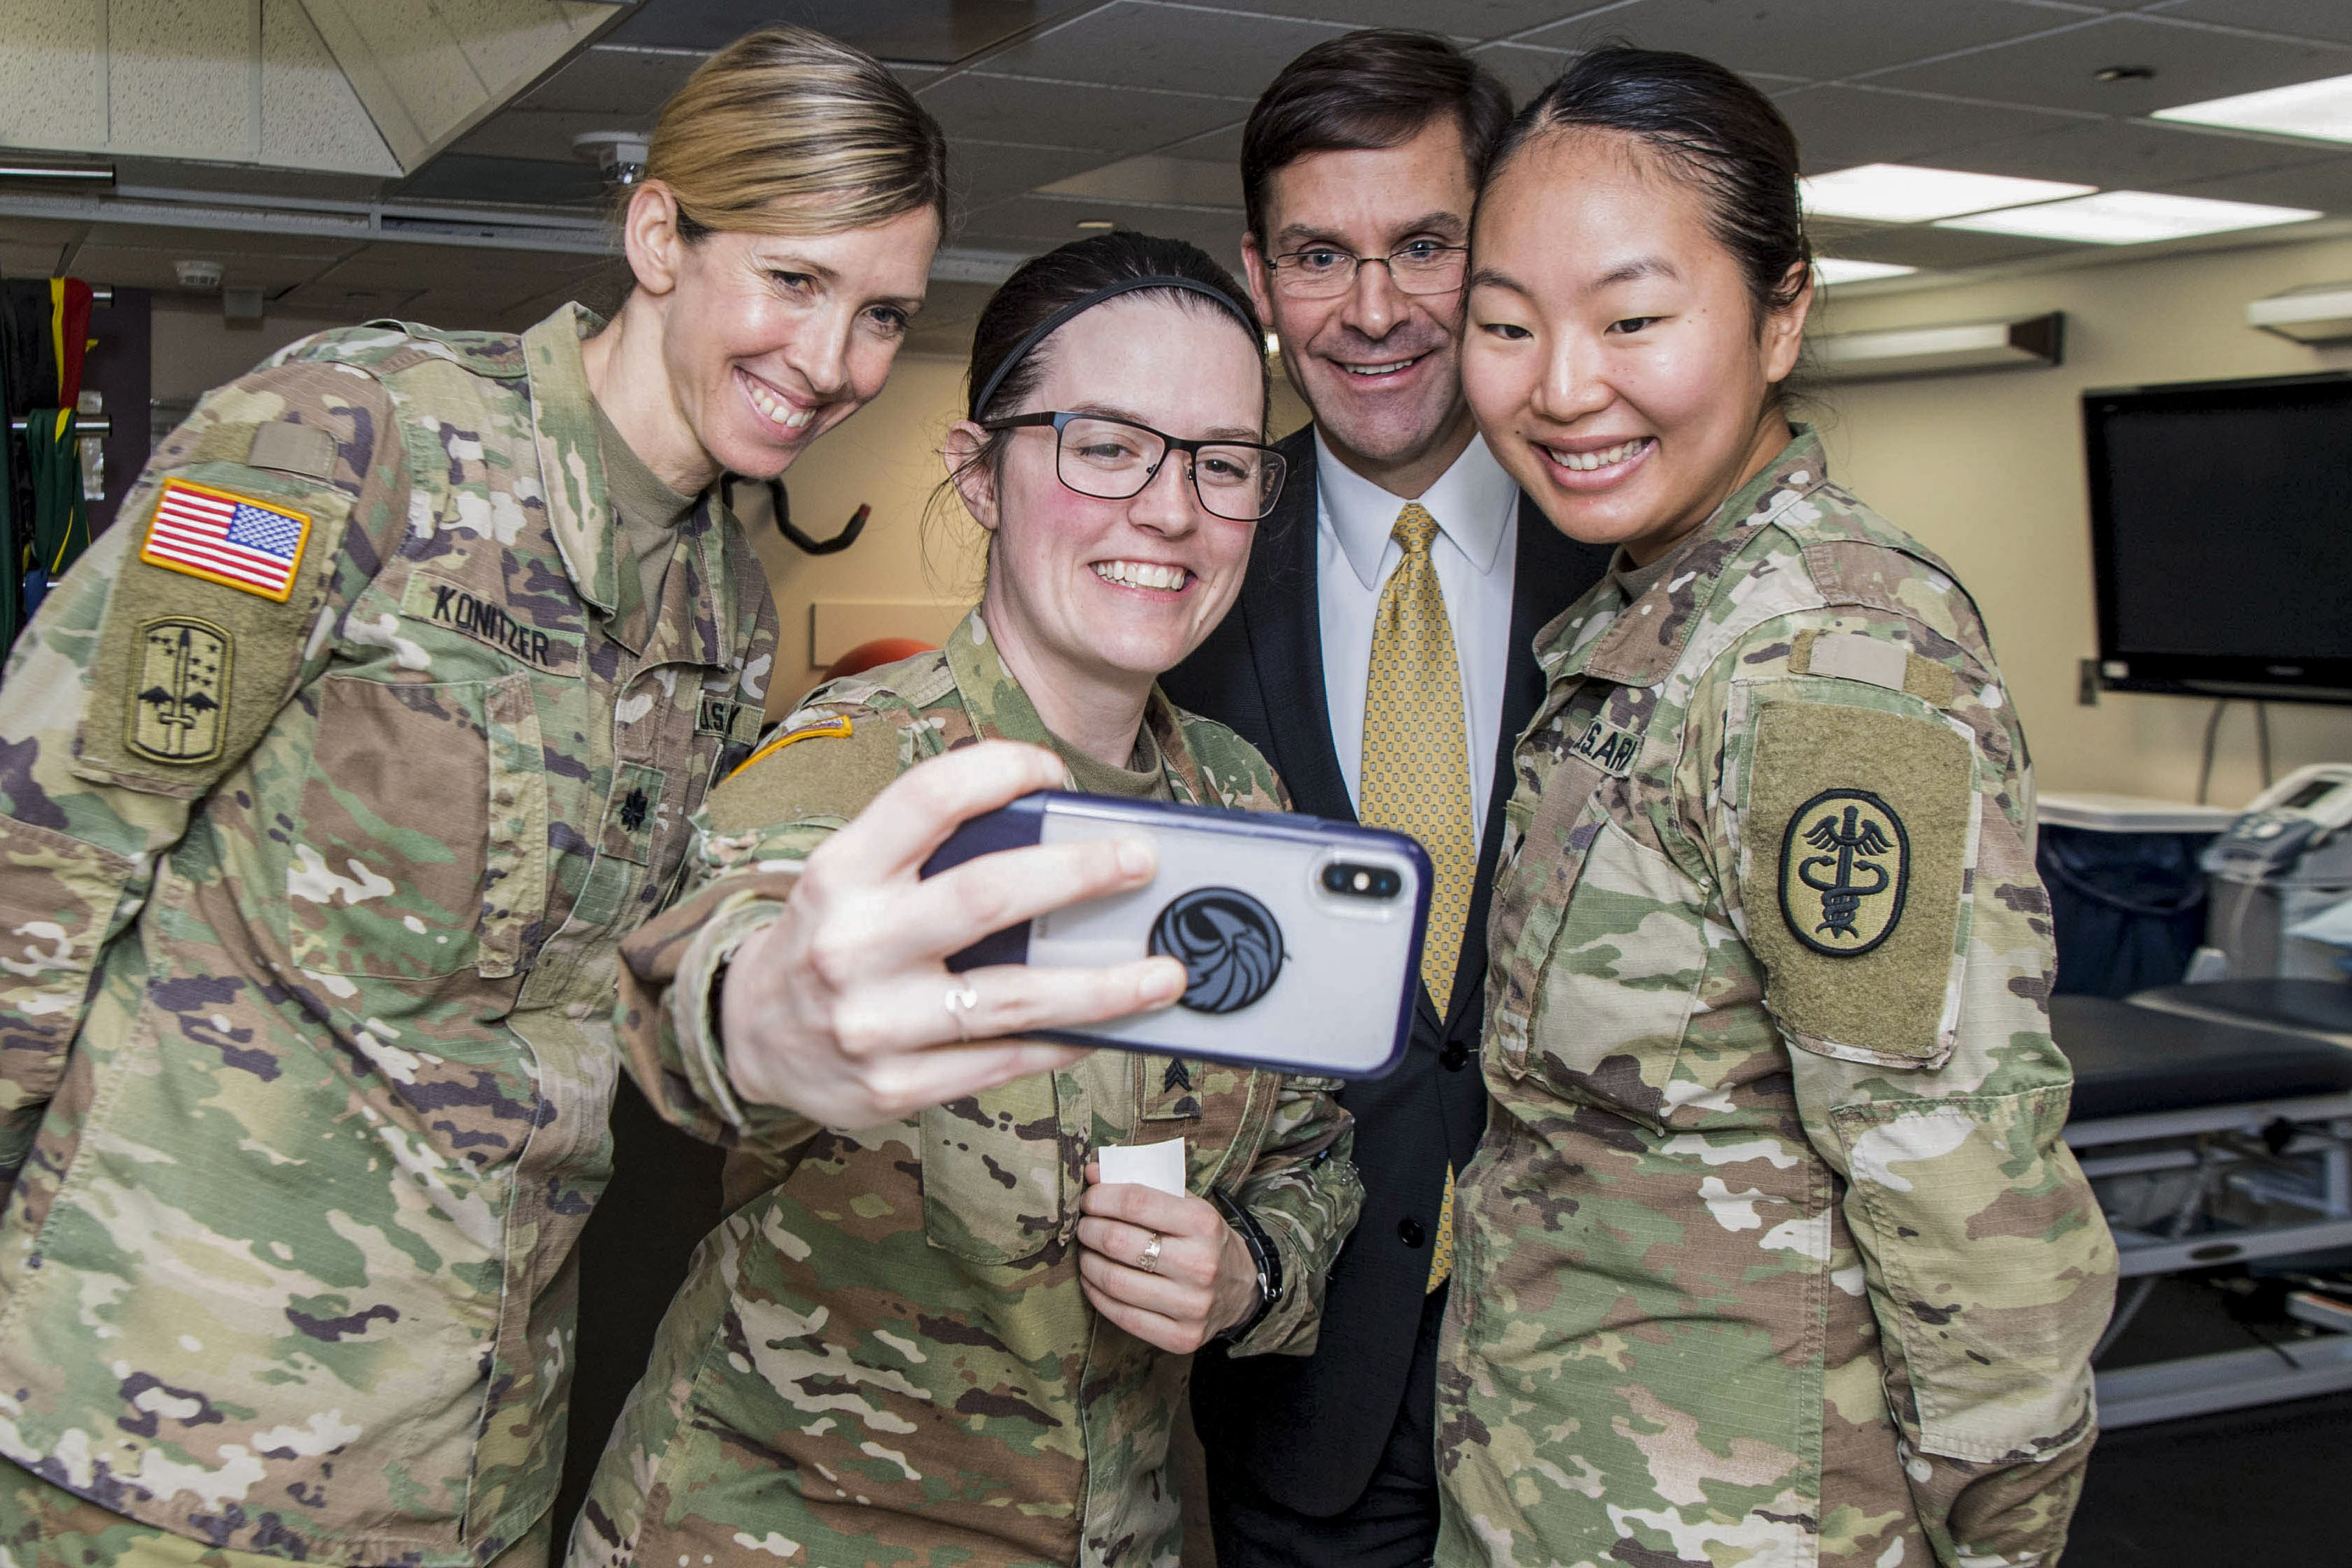 Army Secretary Mark Esper stands for a selfie with service members, March 14, 2019.